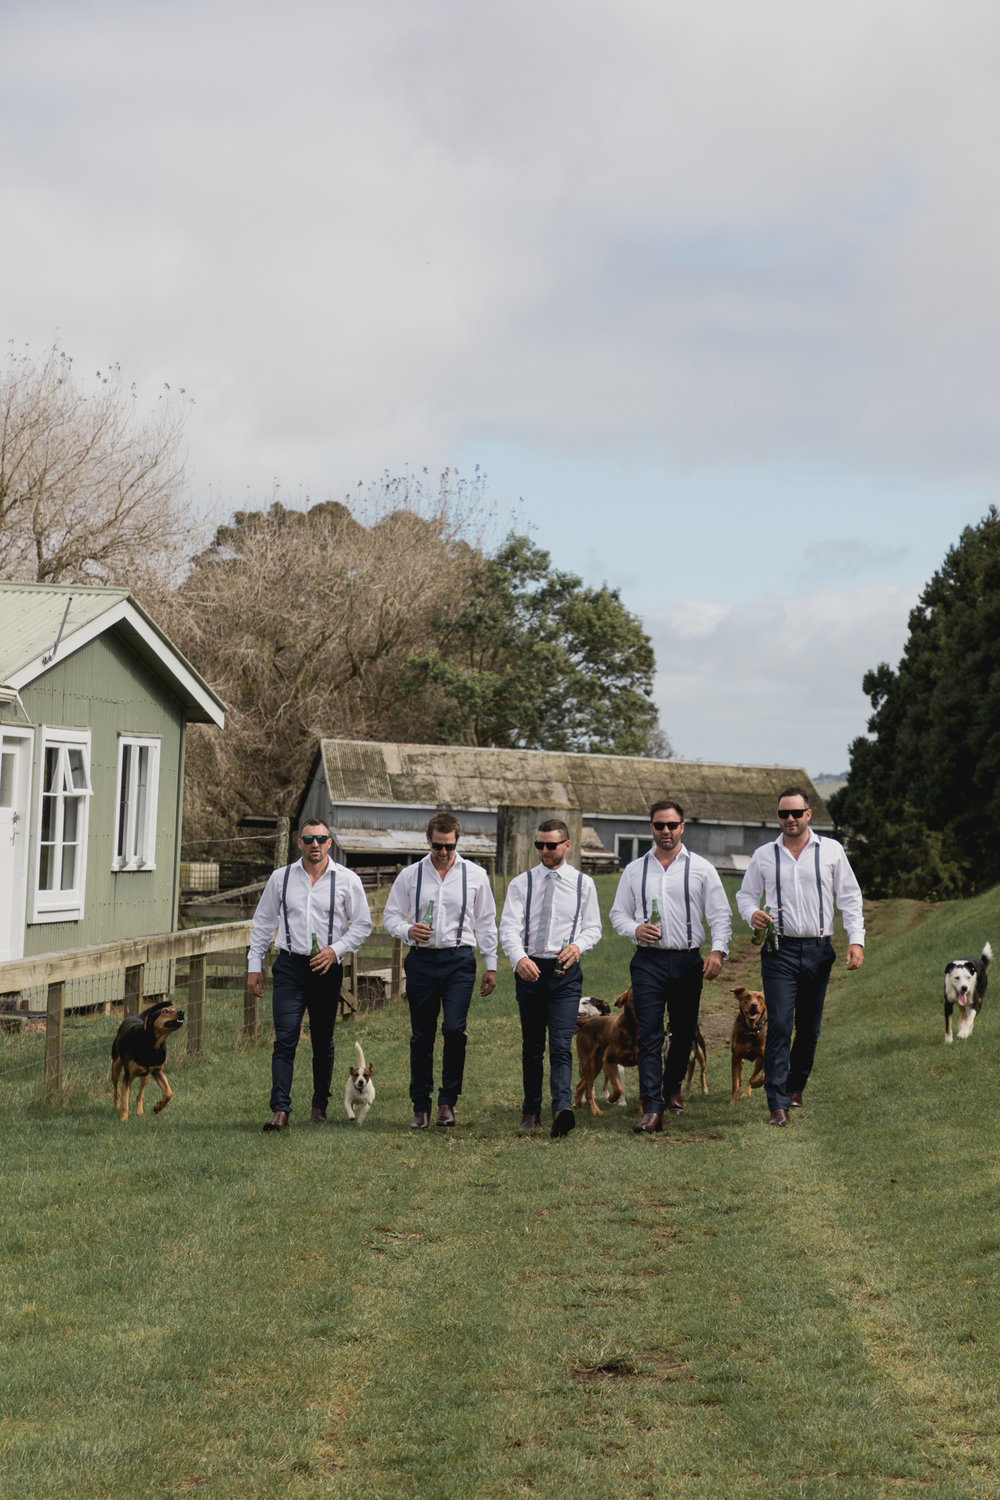 wedding-at-the-red-barn-new-zealand-wedding-photographer-groom-walking-withdogs-and-boys.jpg